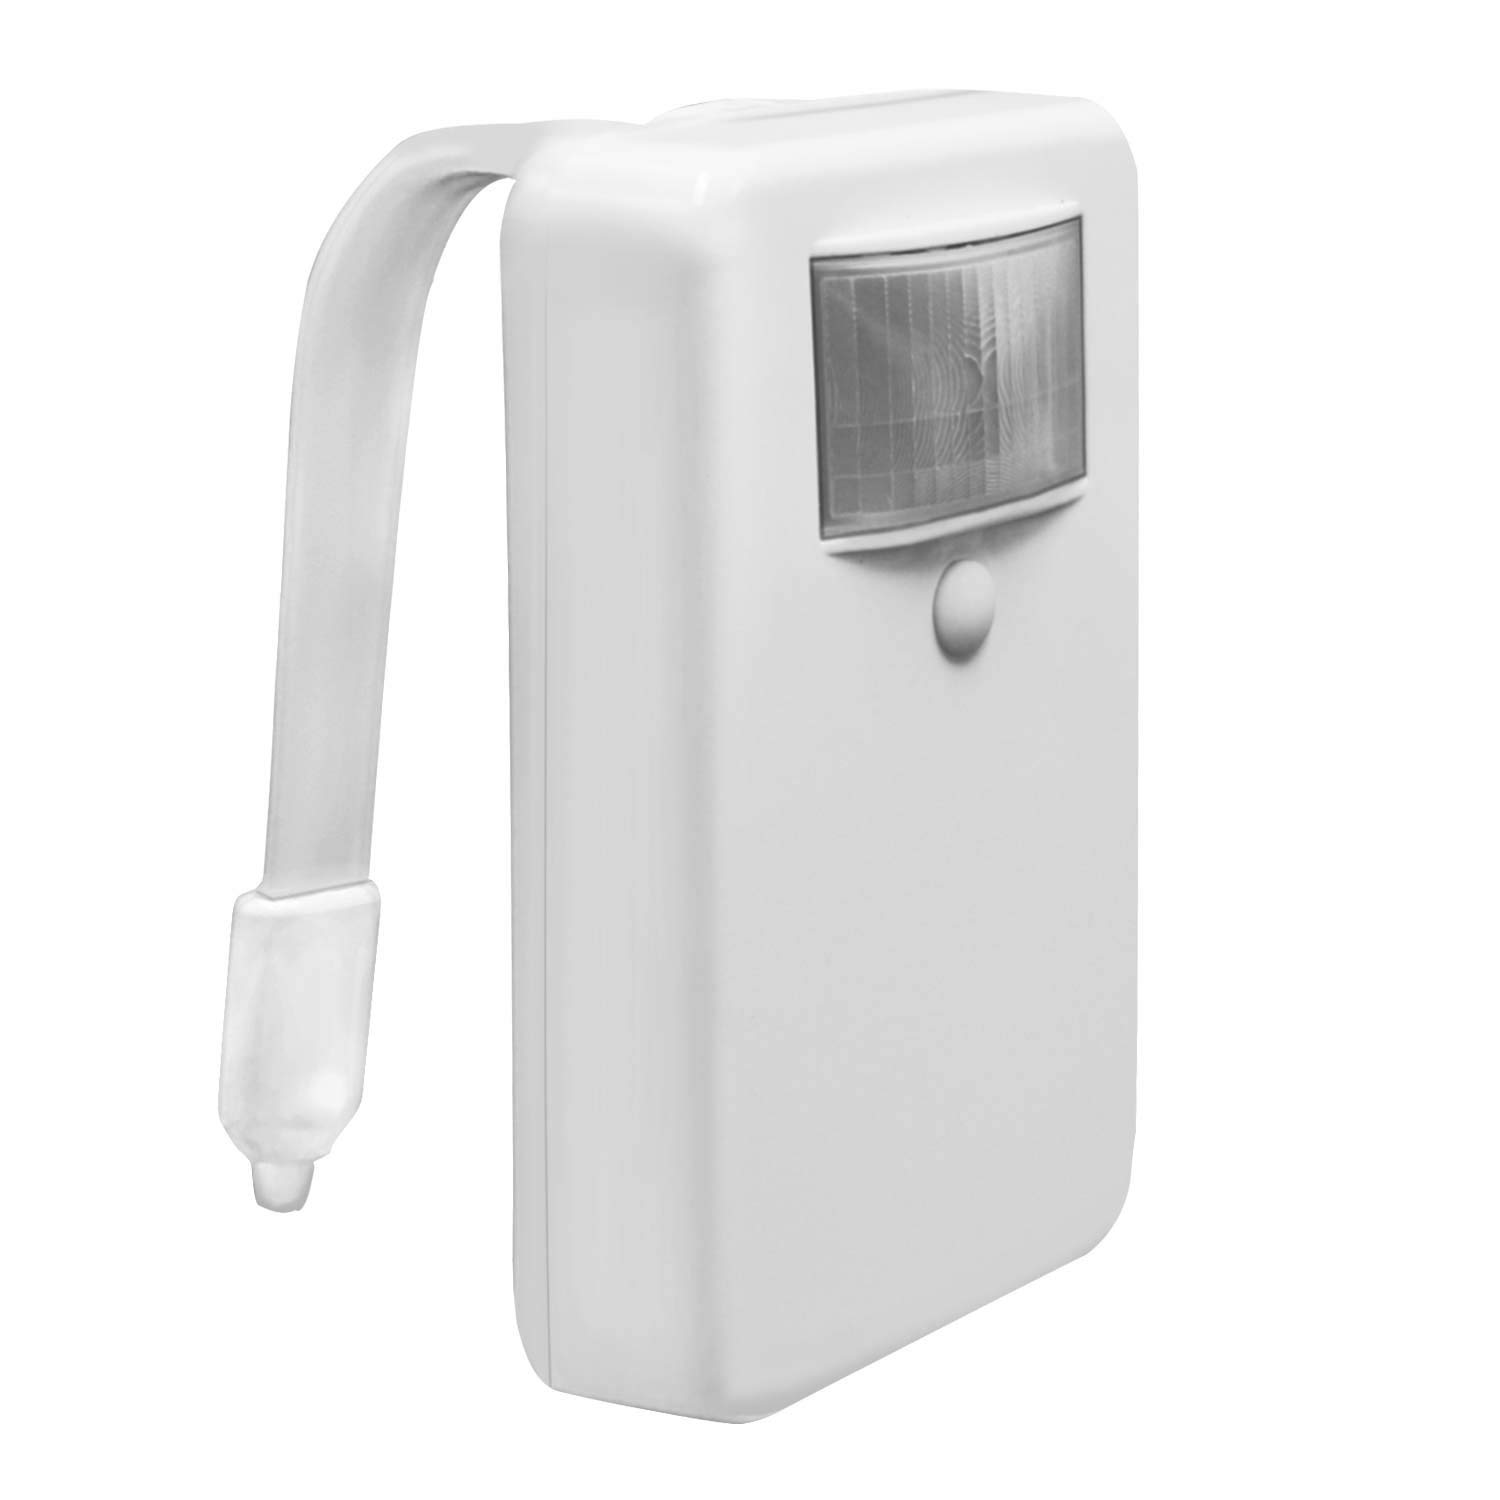 Cheap Motion Sensor Dimmer Find Deals On Line Kedsumr Wireless 1 Way Off Digital Remote Control Switch 110v For Get Quotations Toilet Night Light Twz Based Lighting Your Seat 16 Colors